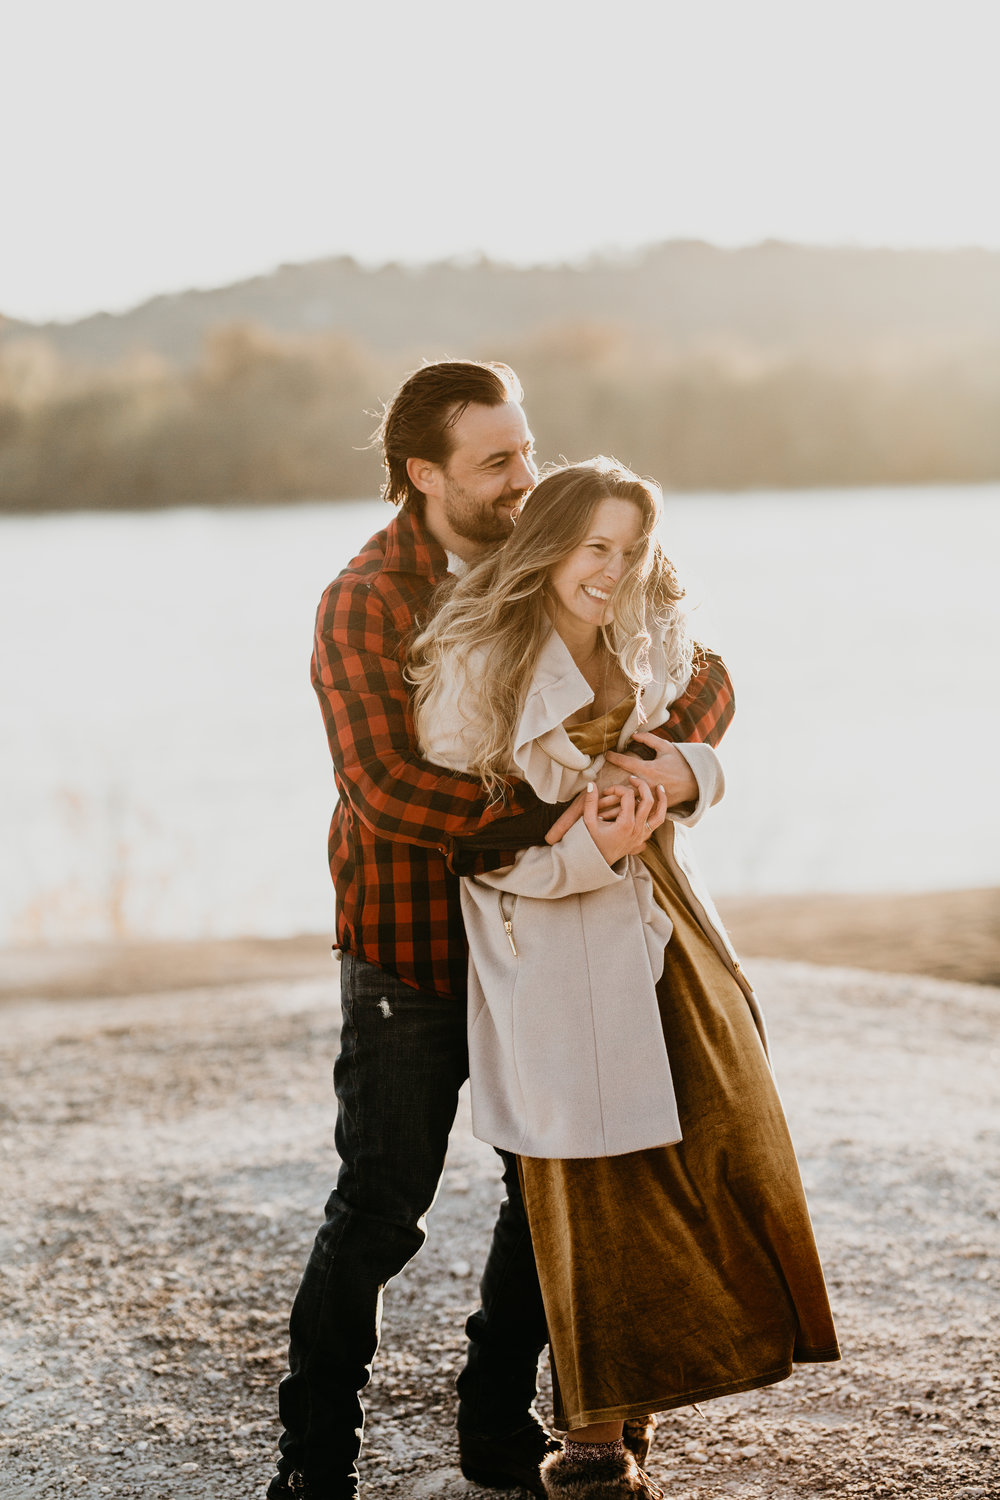 nicole-daacke-photography-white-cliffs-of-conoy-in-lancaster-pa-pennsylvania-adventure-session-adventure-elopement-photographer-engagement session-in-lancaster-pa-photographer-golden-sunset-winter-solstice-wedding-riverside-elopement-5101.jpg